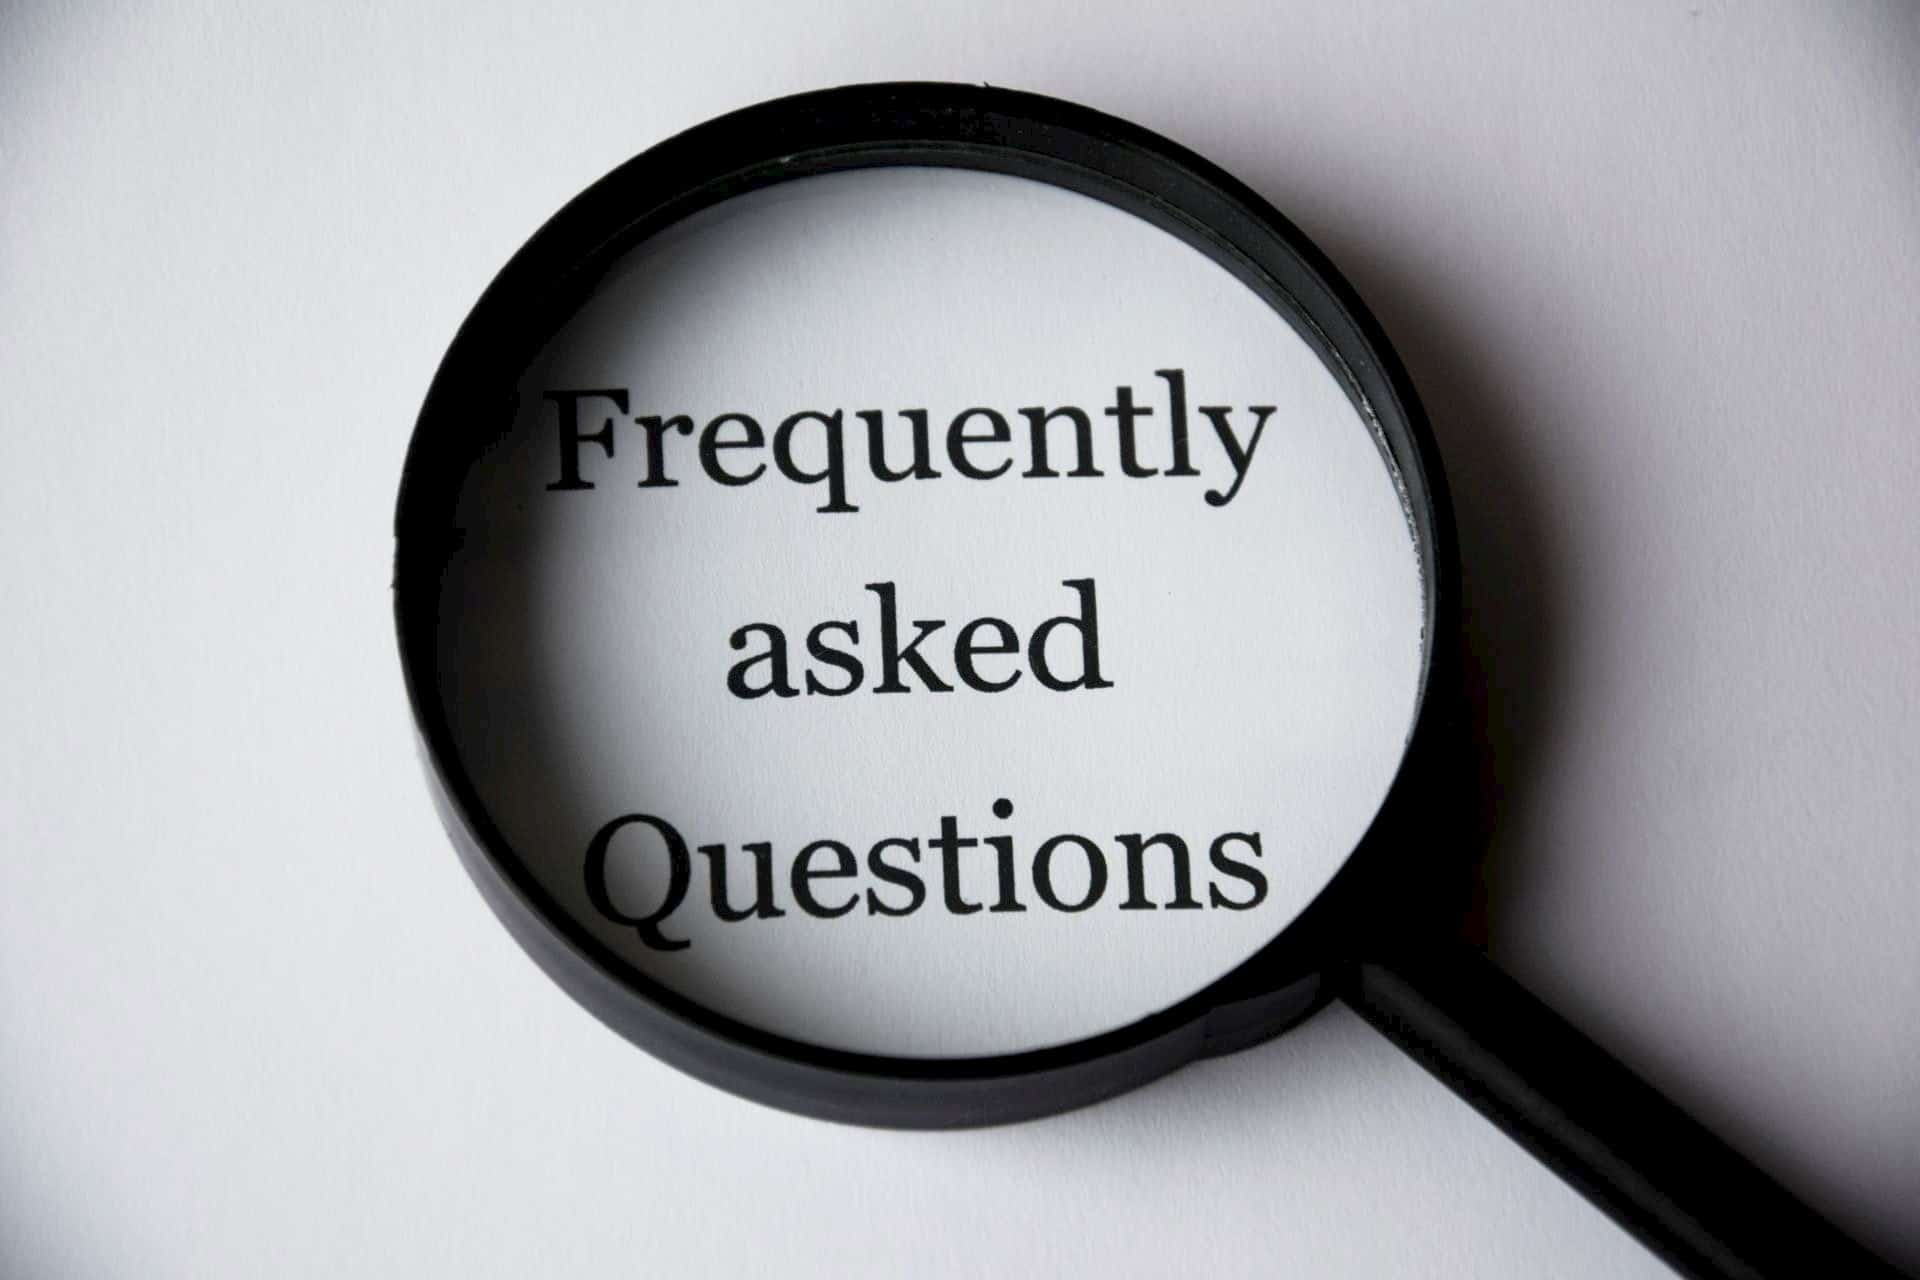 Frequently Asked Questions (FAQs) for business